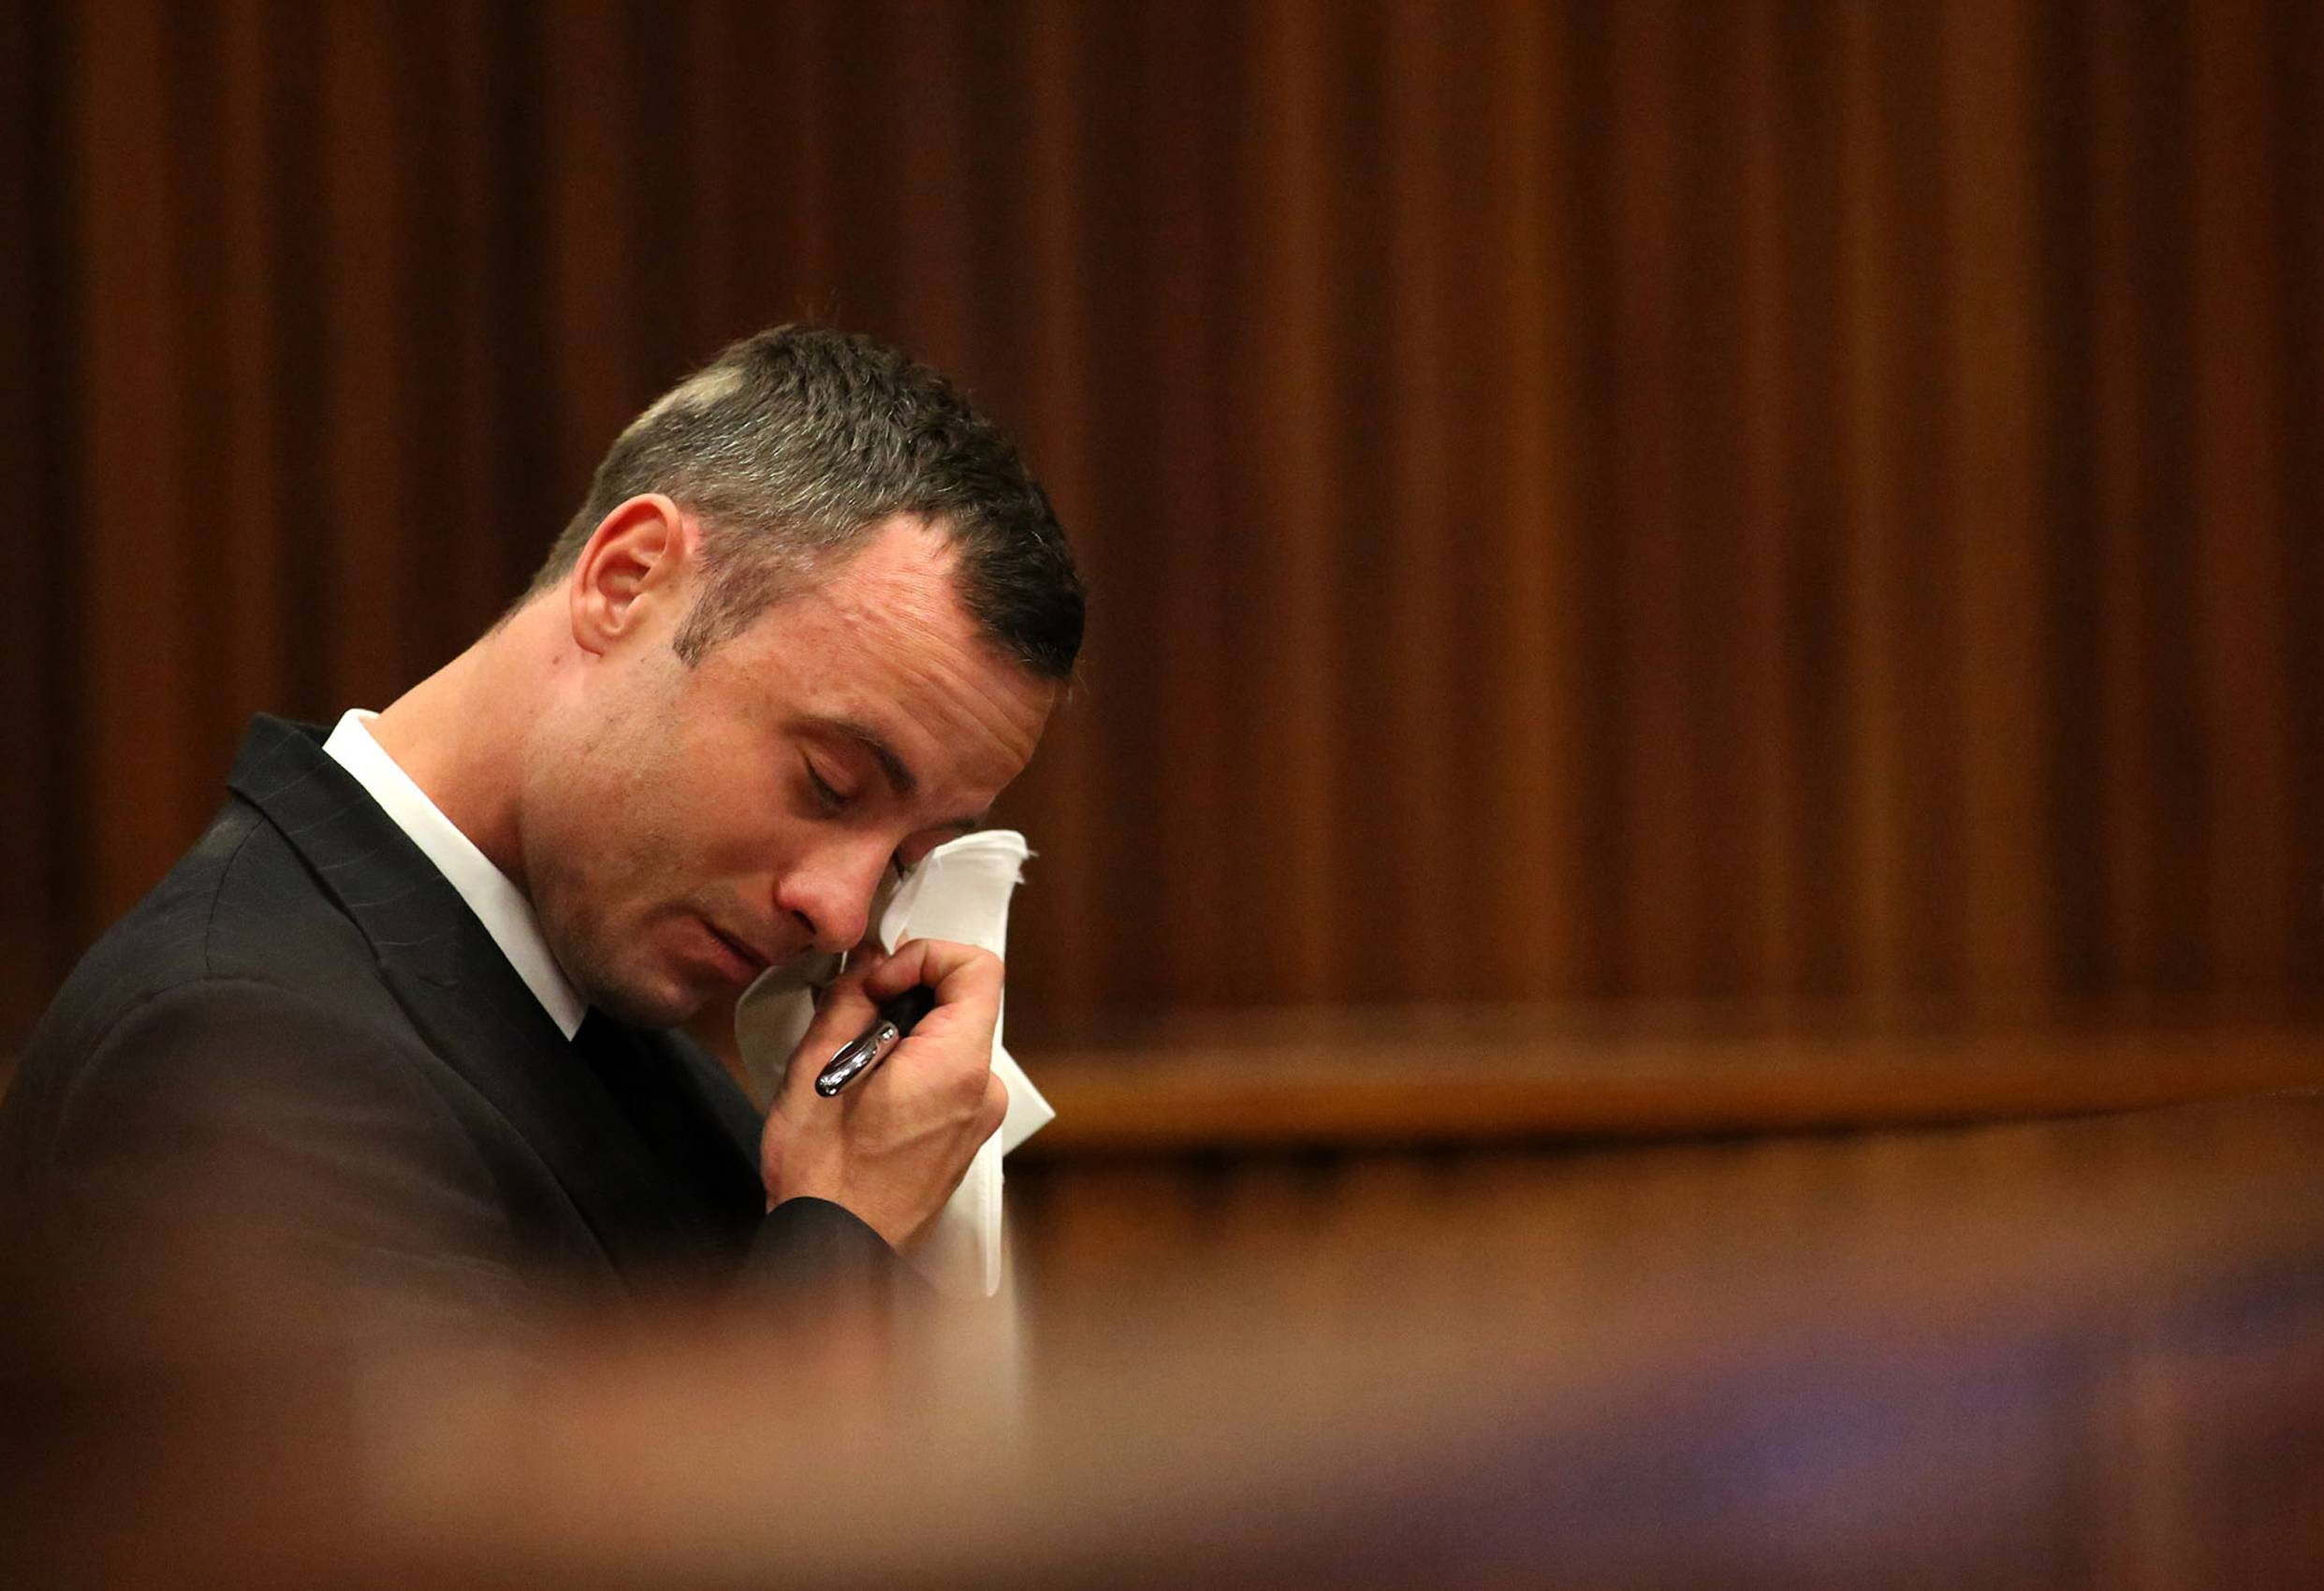 Oscar Pistorius reacts in the dock during cross questioning on mobile phone text messages between him and Reeva Steenkamp in court in Pretoria, South Africa, Tuesday, March 25, 2014. Pistorius is charged with the Valentines Day 2013 shooting death of his girlfriend Reeva Steenkamp. (AP Photo/Siphiwe Sibeko, Pool)